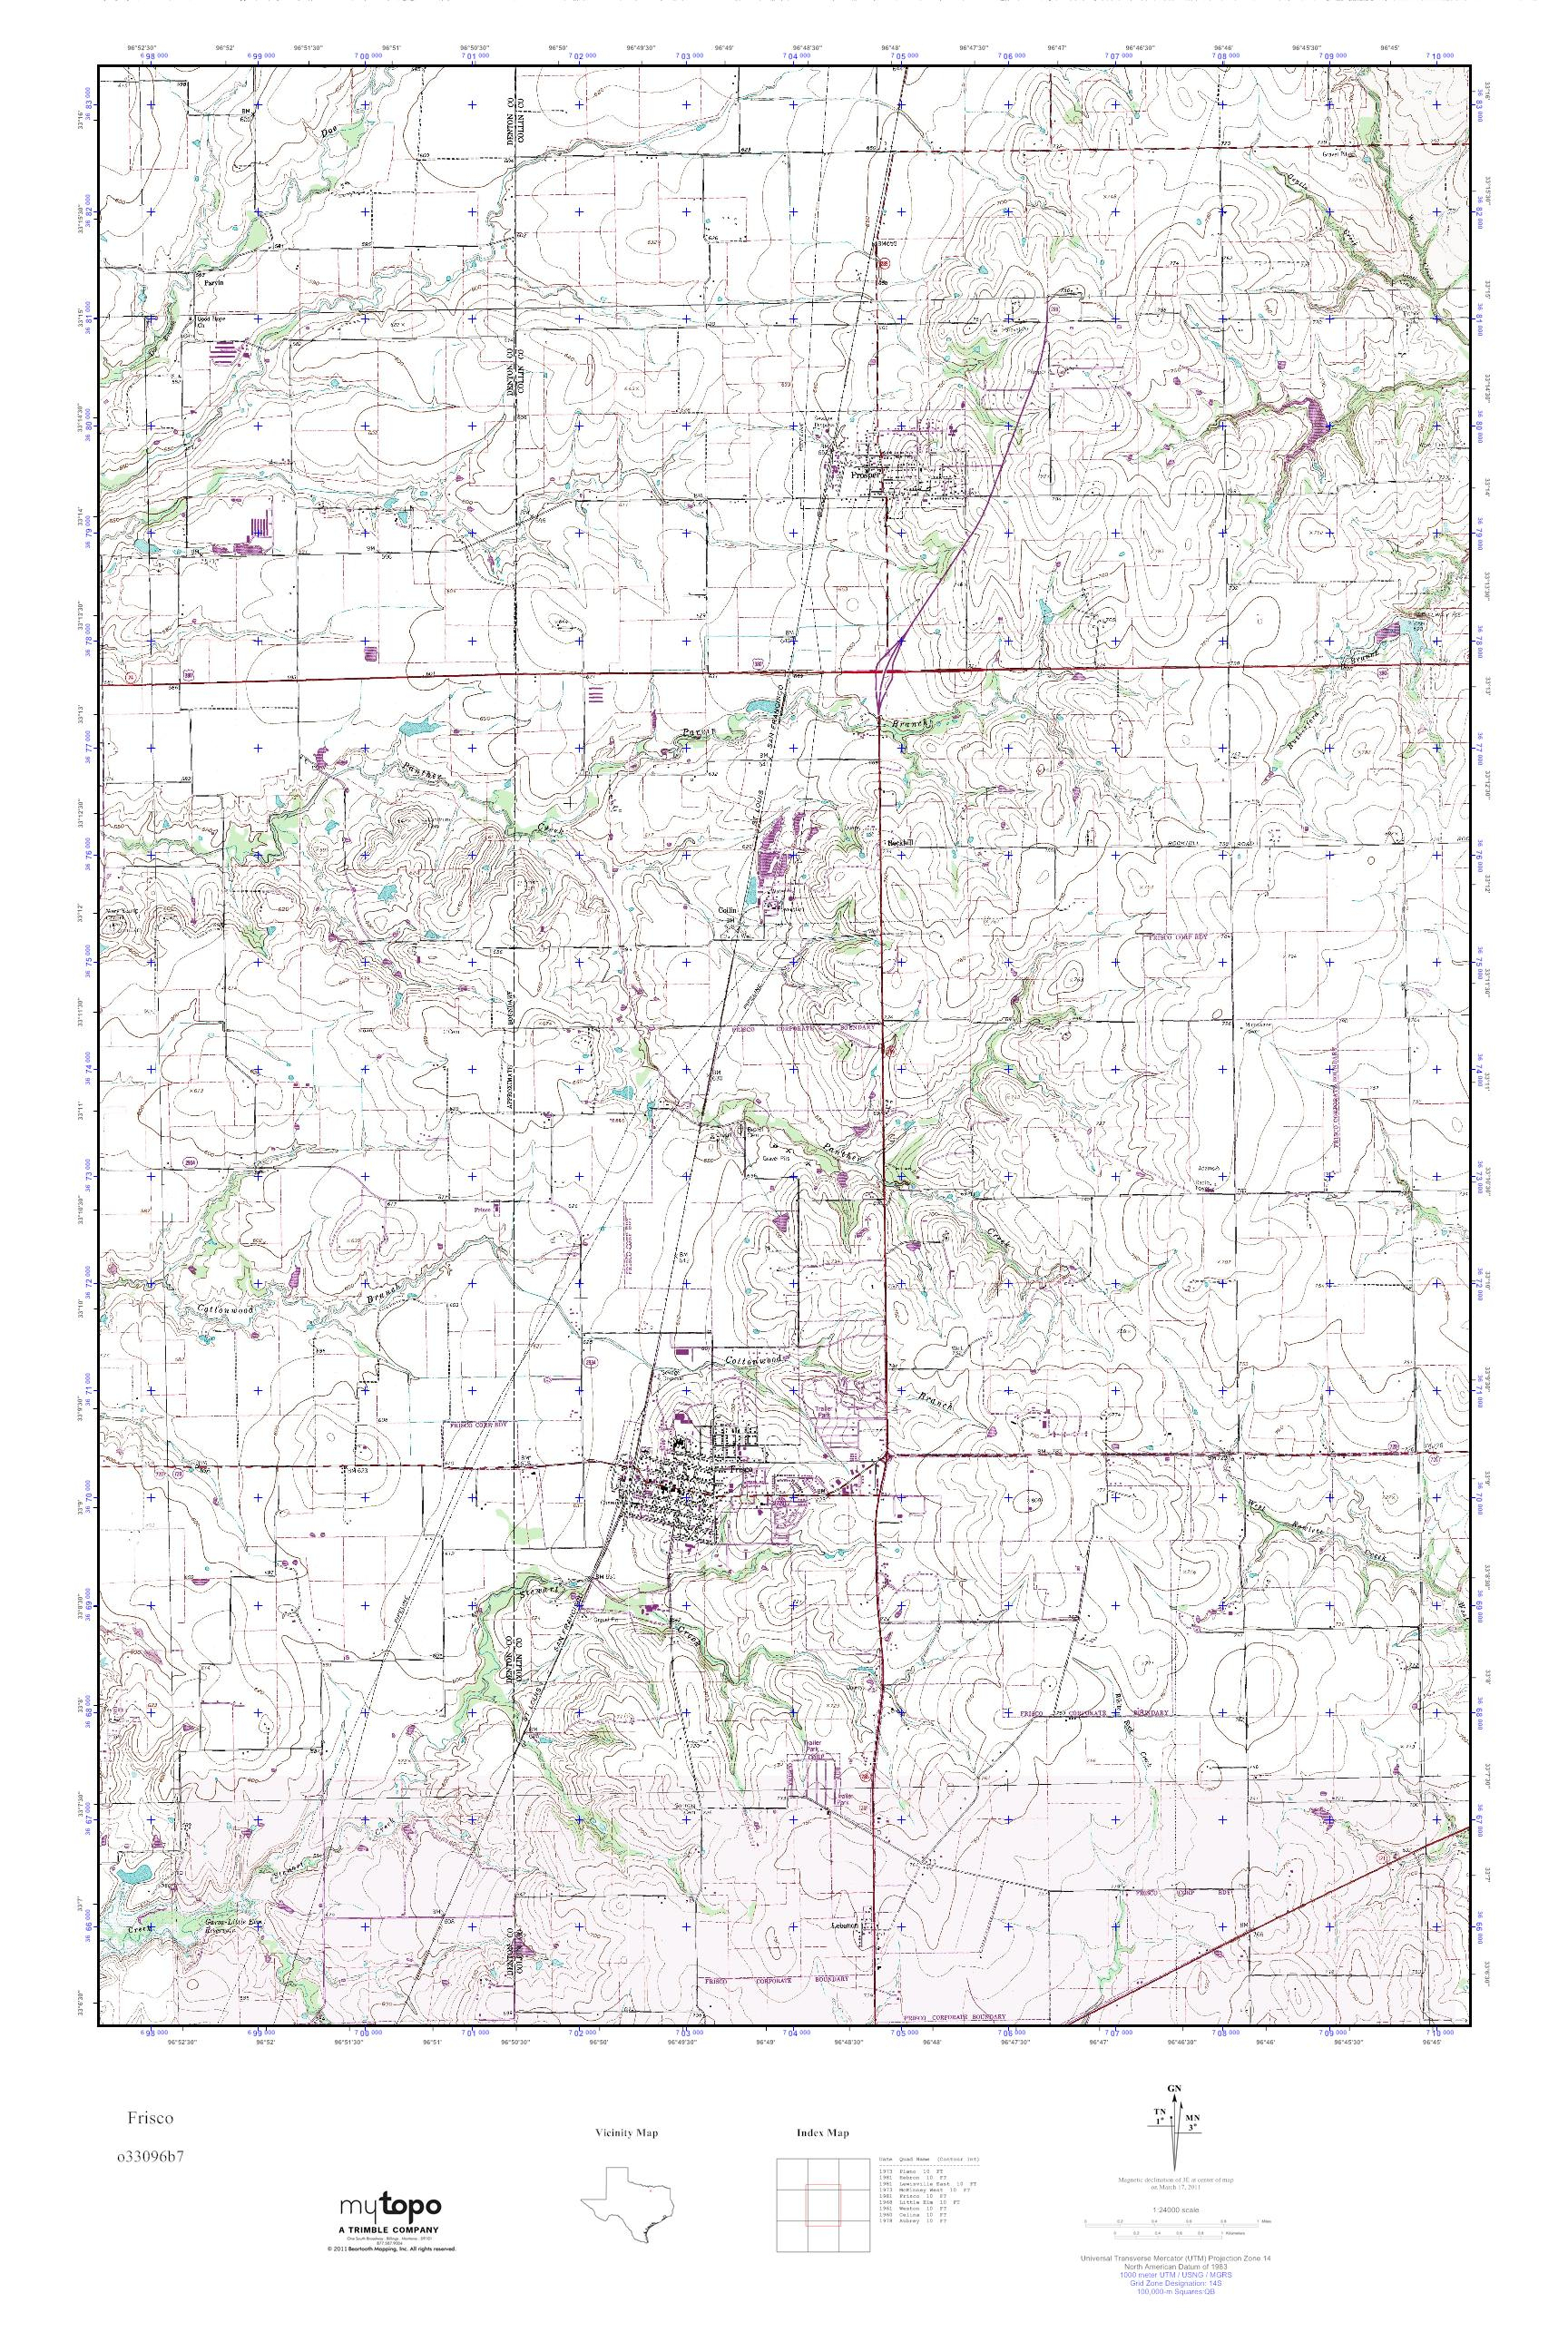 Mytopo Frisco, Texas Usgs Quad Topo Map - Frisco Texas Map